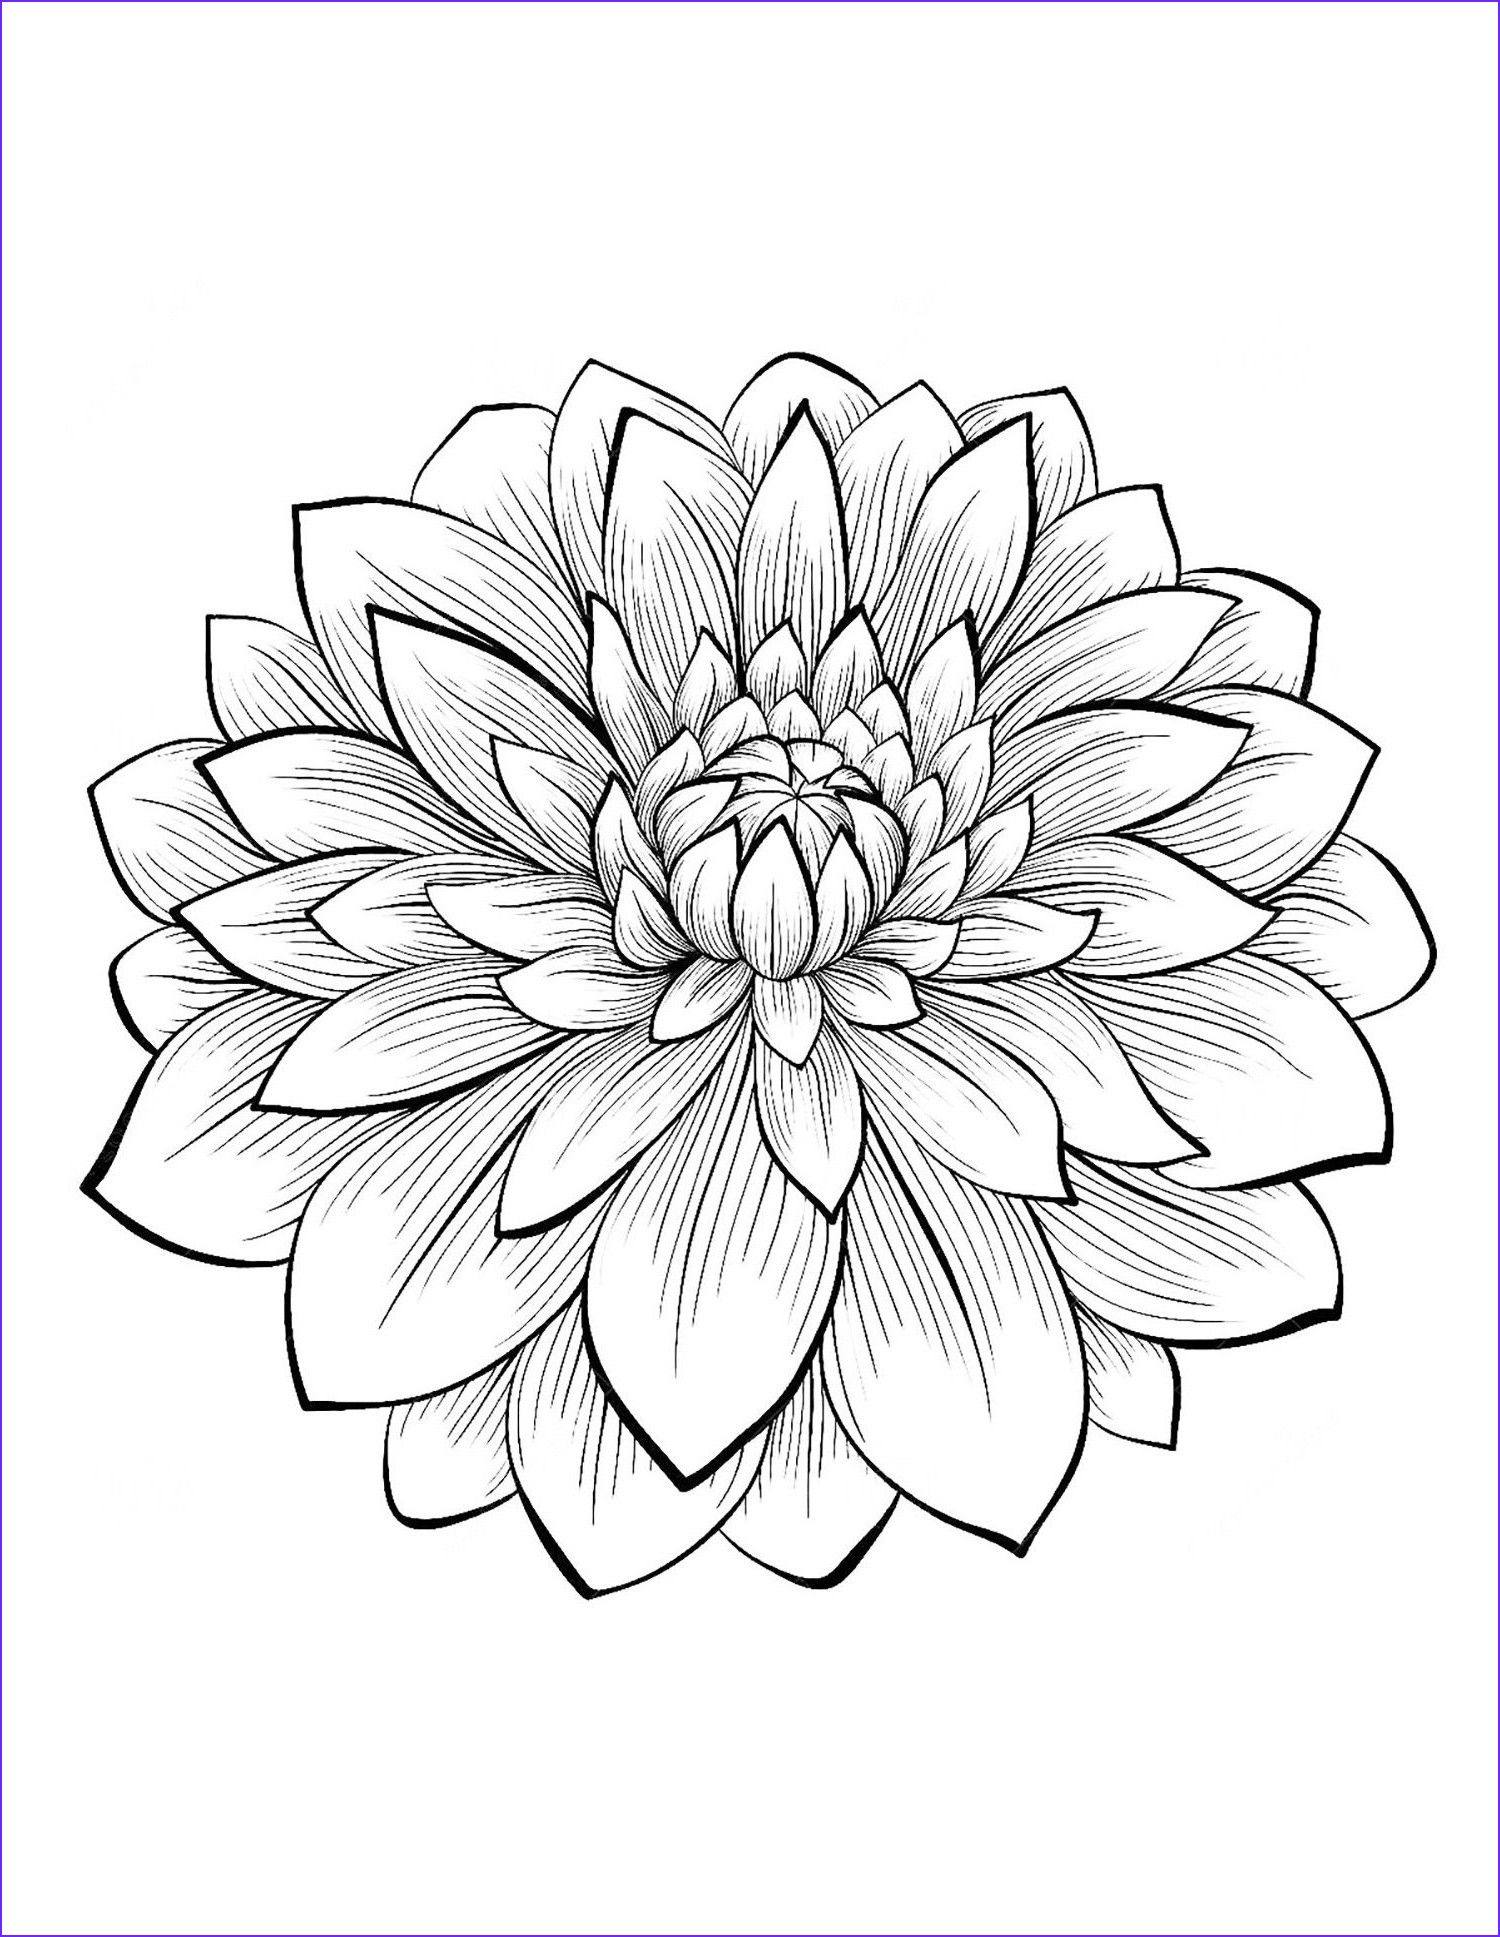 Lotus Flower Coloring Page Youngandtae Com Printable Flower Coloring Pages Flower Coloring Pages Mandala Coloring Pages